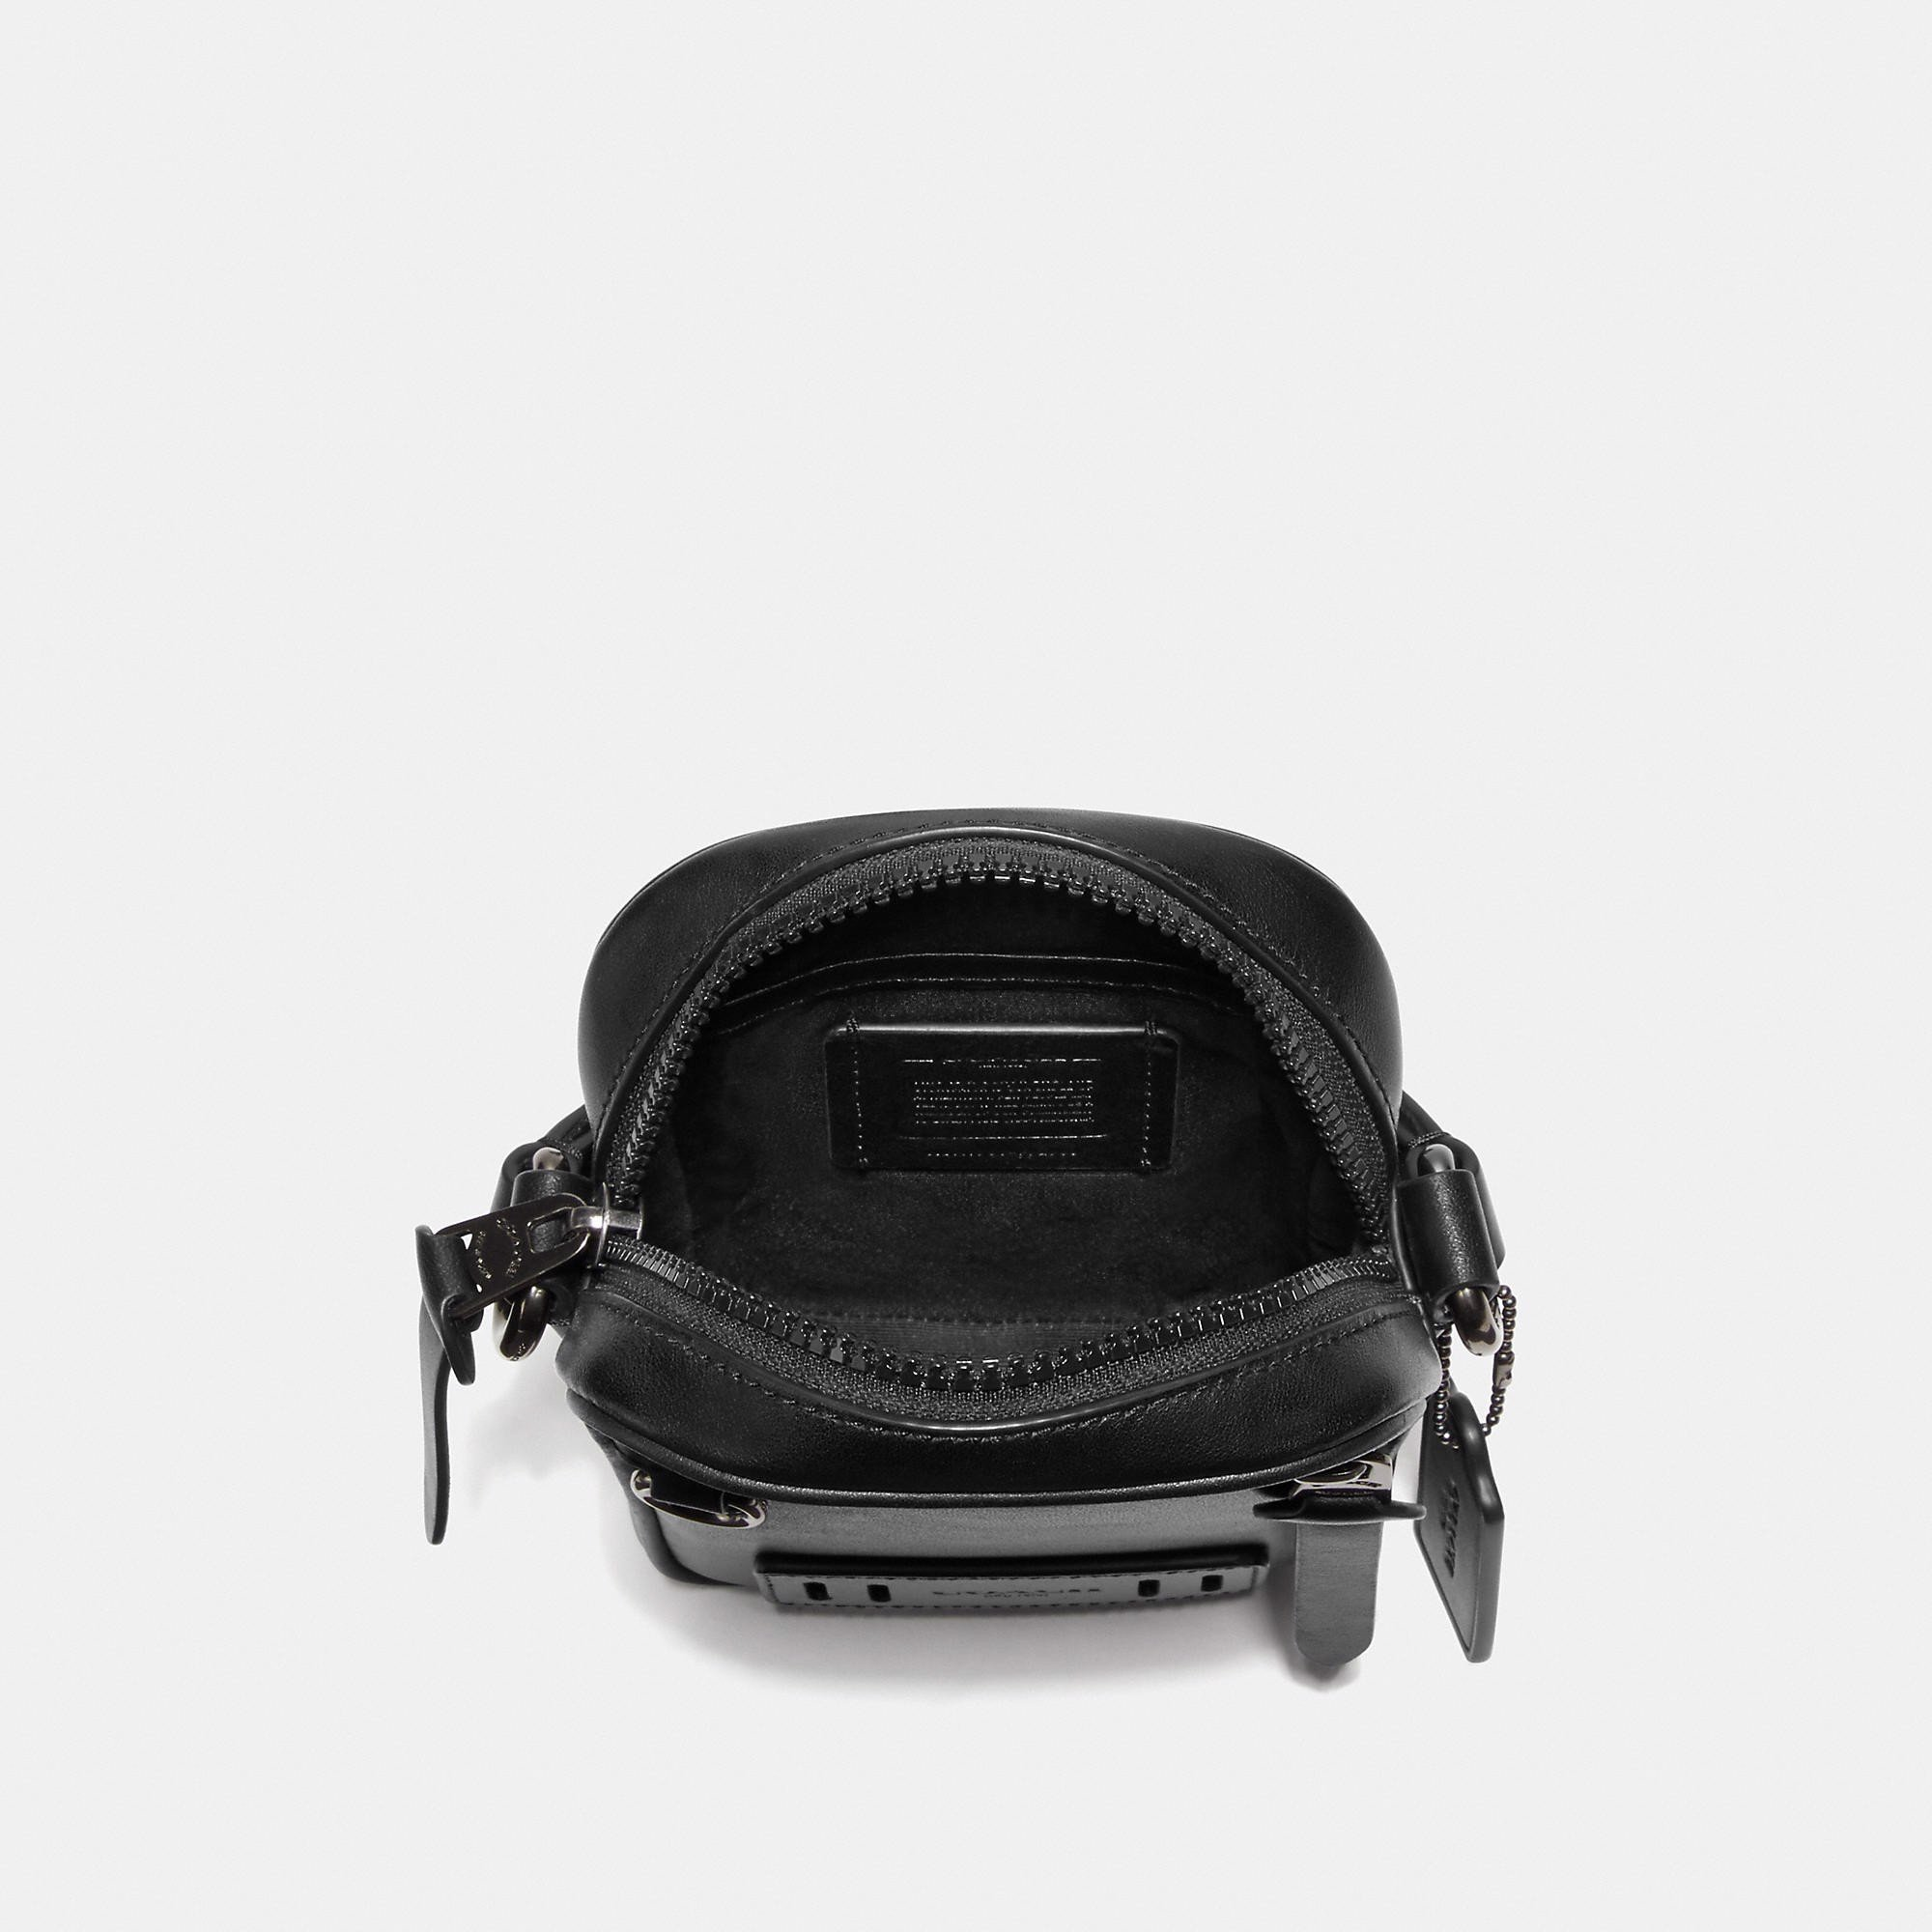 Coach Terrain Crossbody 'Black'